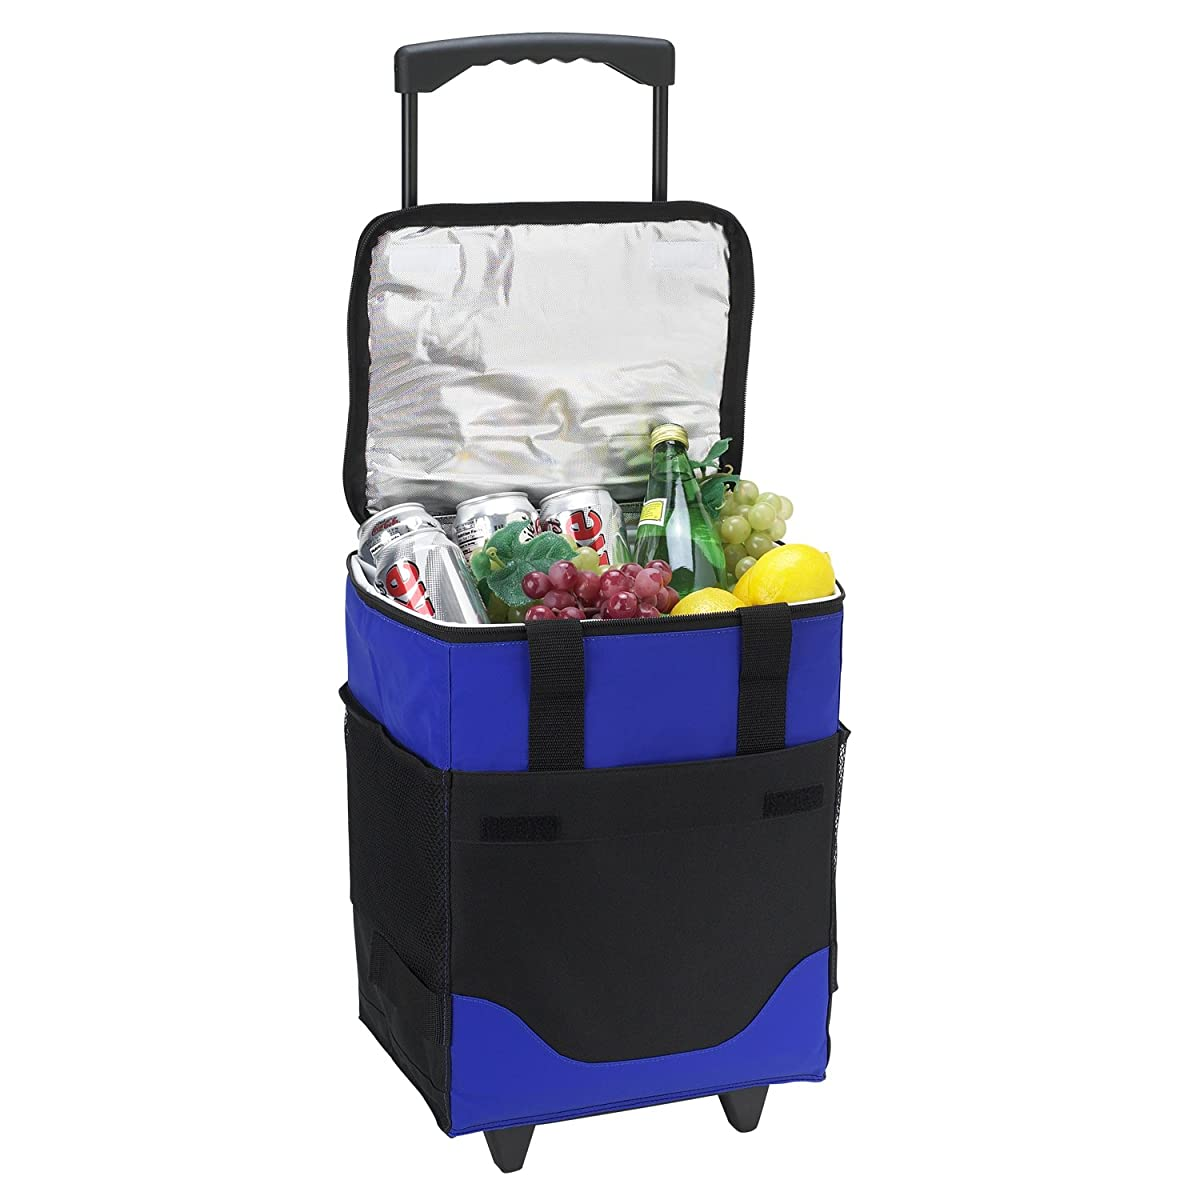 Picnic at Ascot Insulated 6 Bottle Wine Carrier On Wheels, Royal Blue